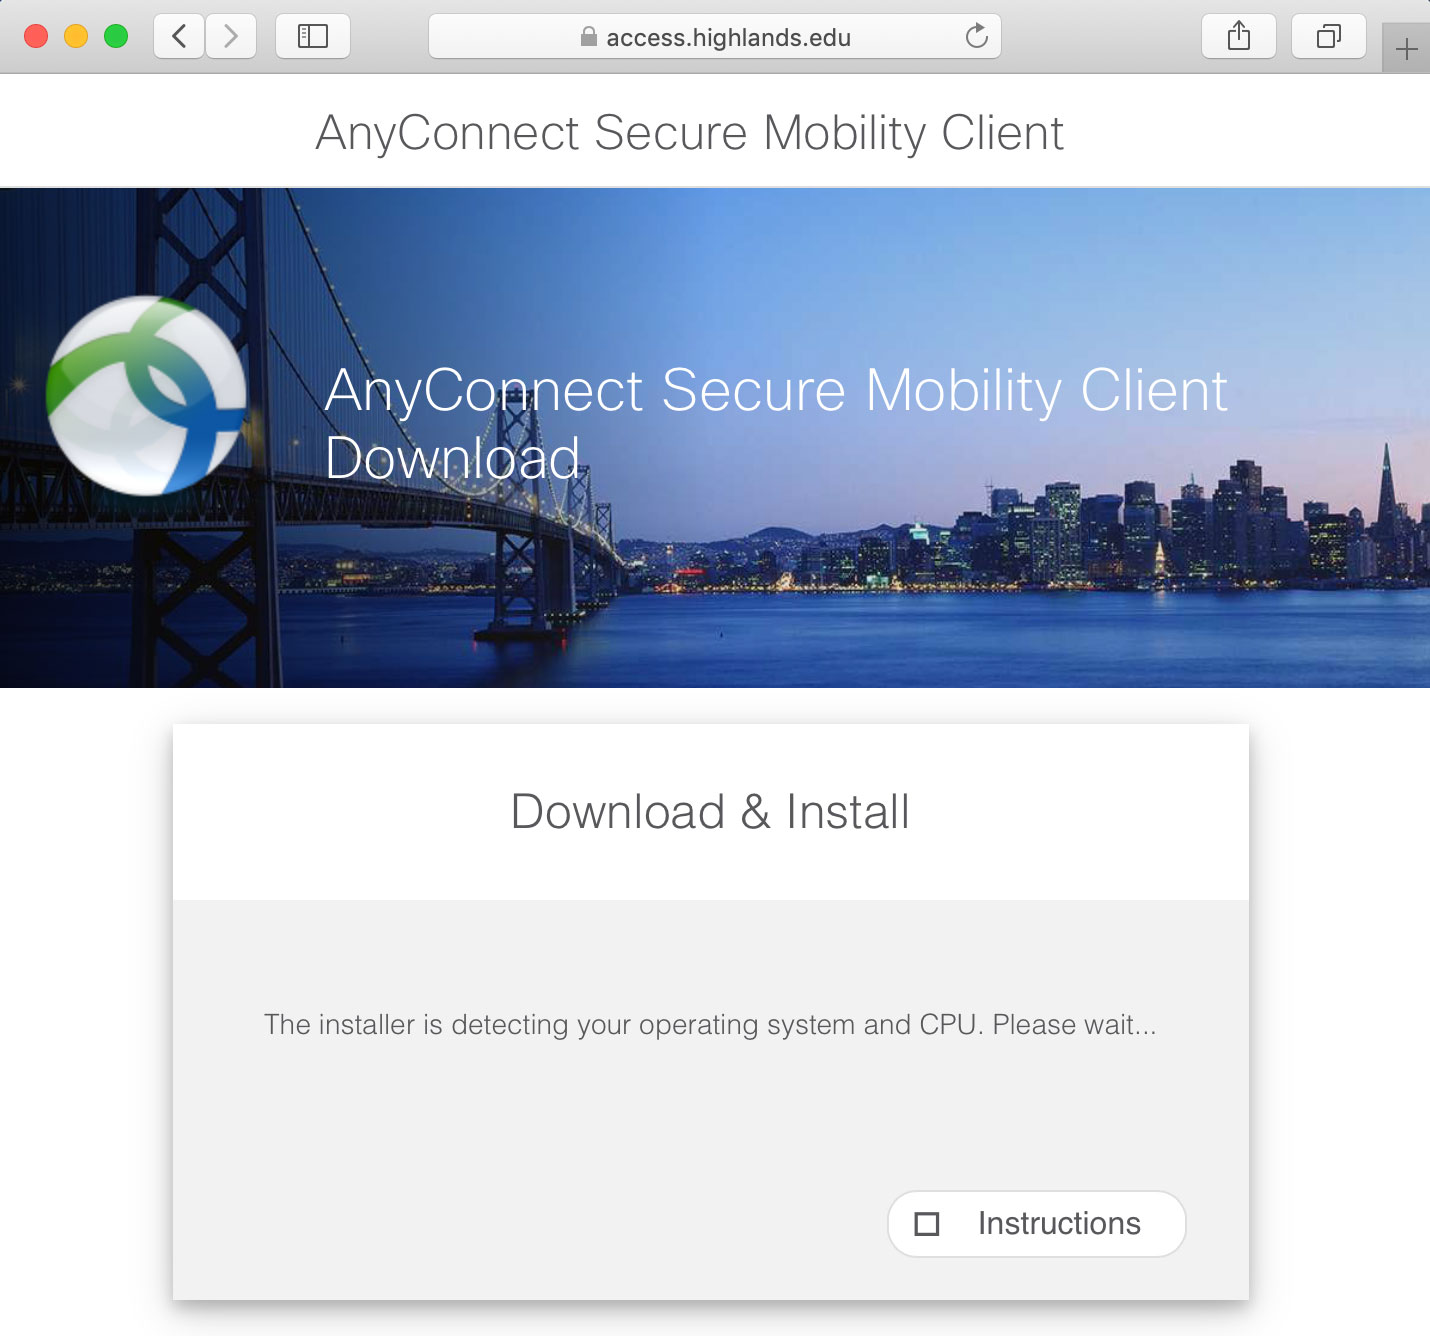 The in-browser web process 'Download and Install' working to detect your operating system and CPU.